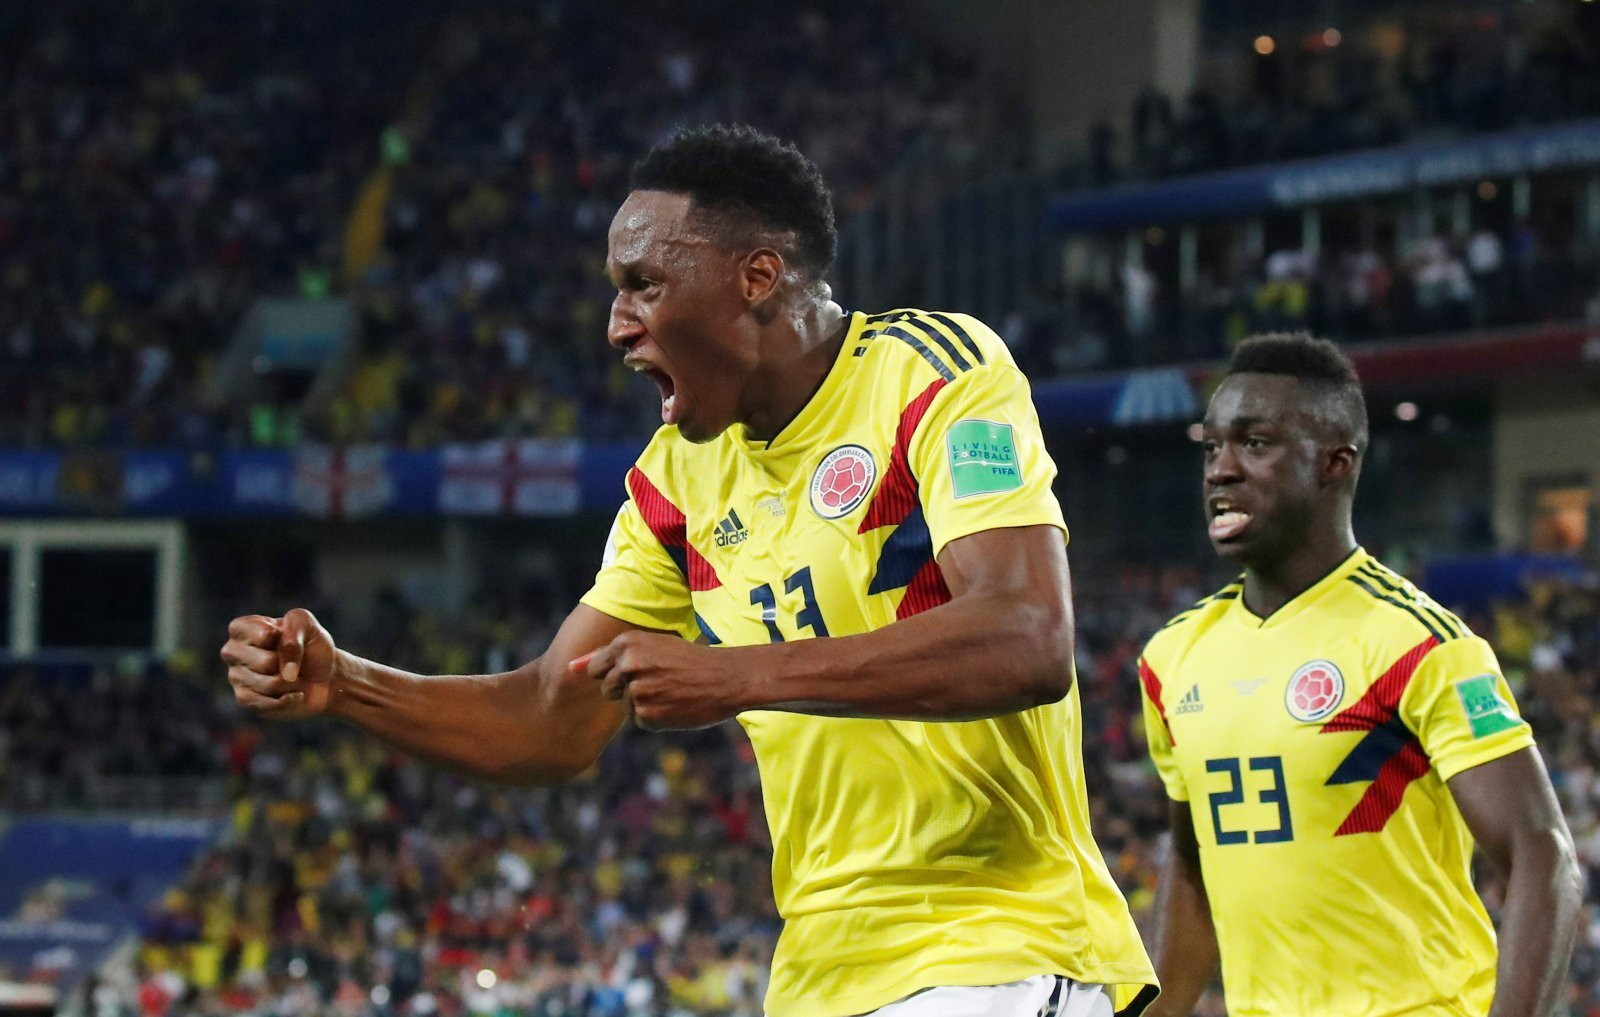 Simply brilliant: This World Cup star should be Liverpool's dream summer signing